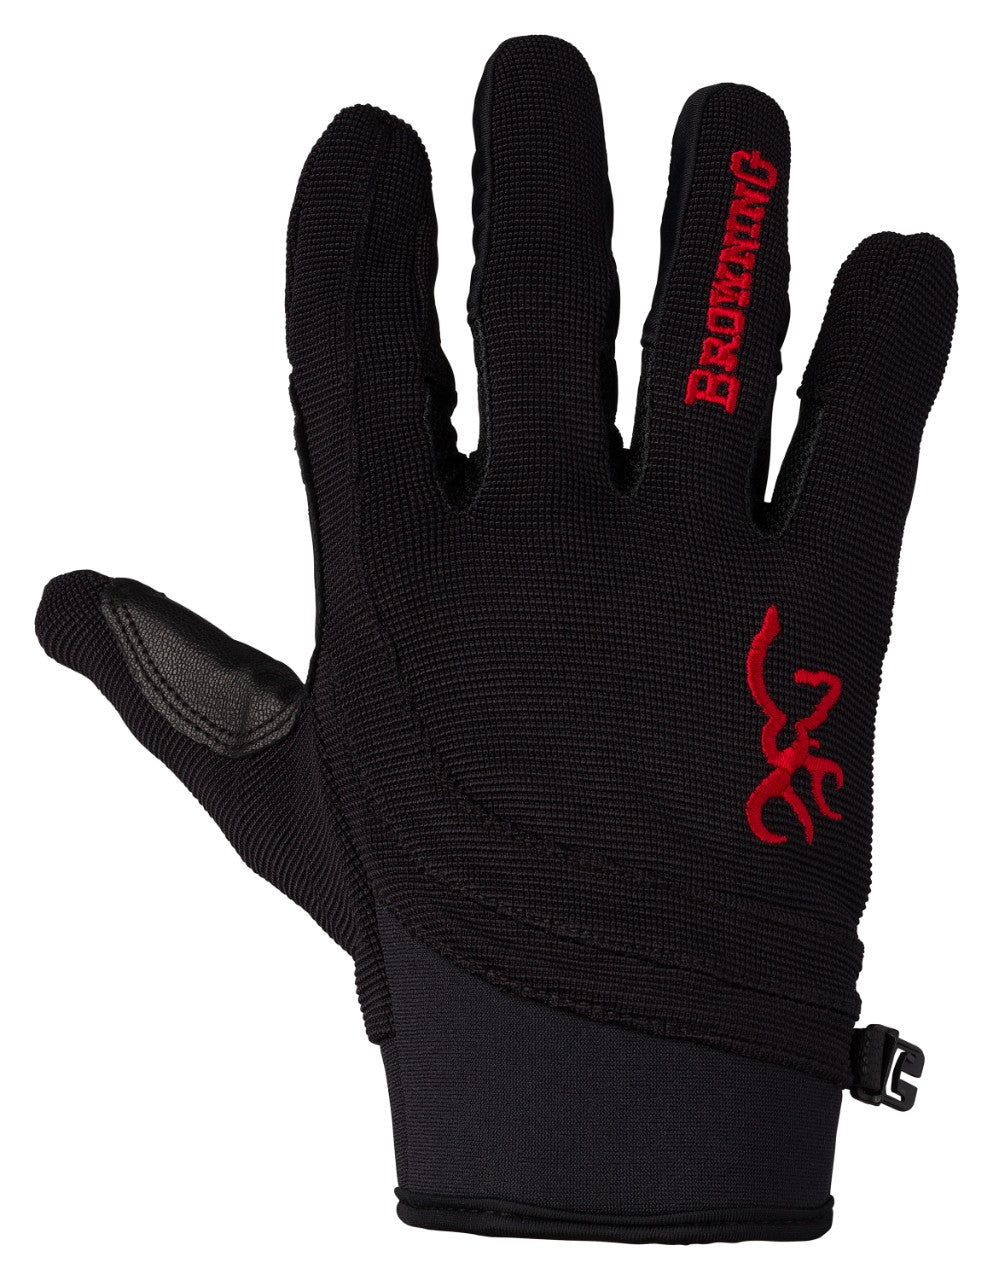 GLV,ACE,BLACK/RED,XL